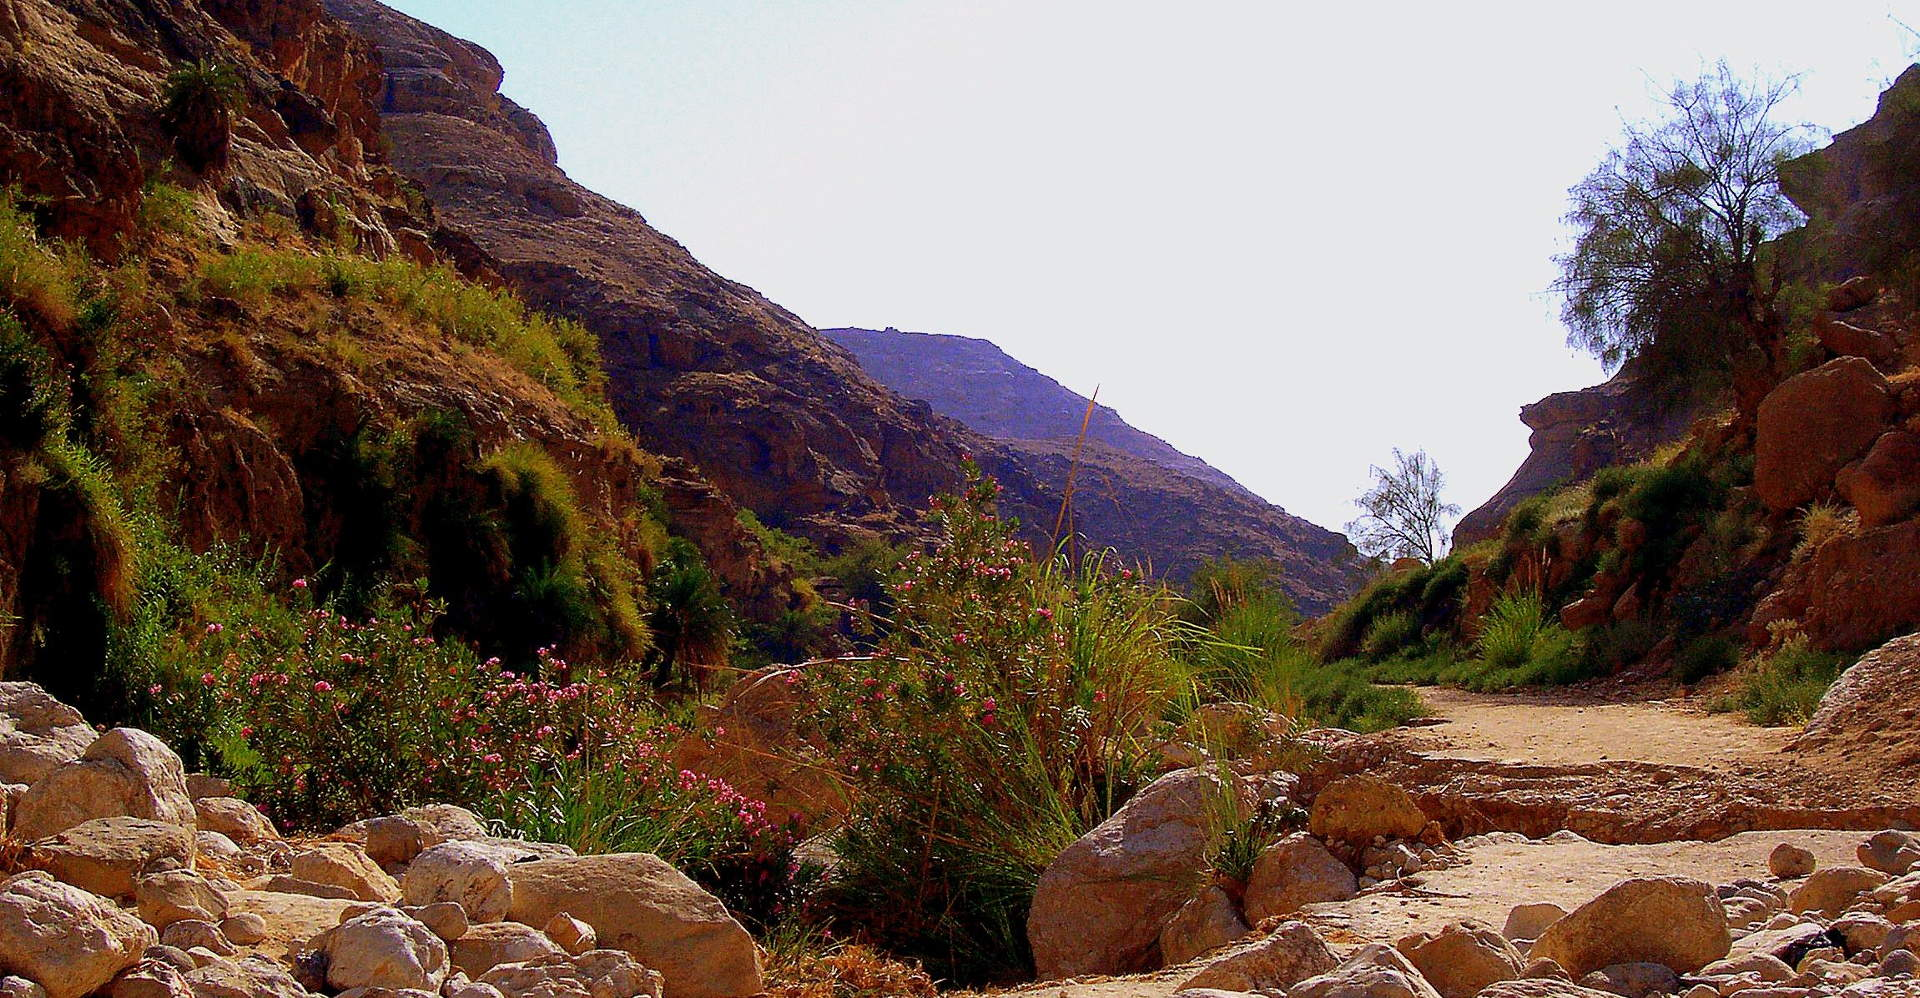 Wadi Ibn Hammad and Karak Castle